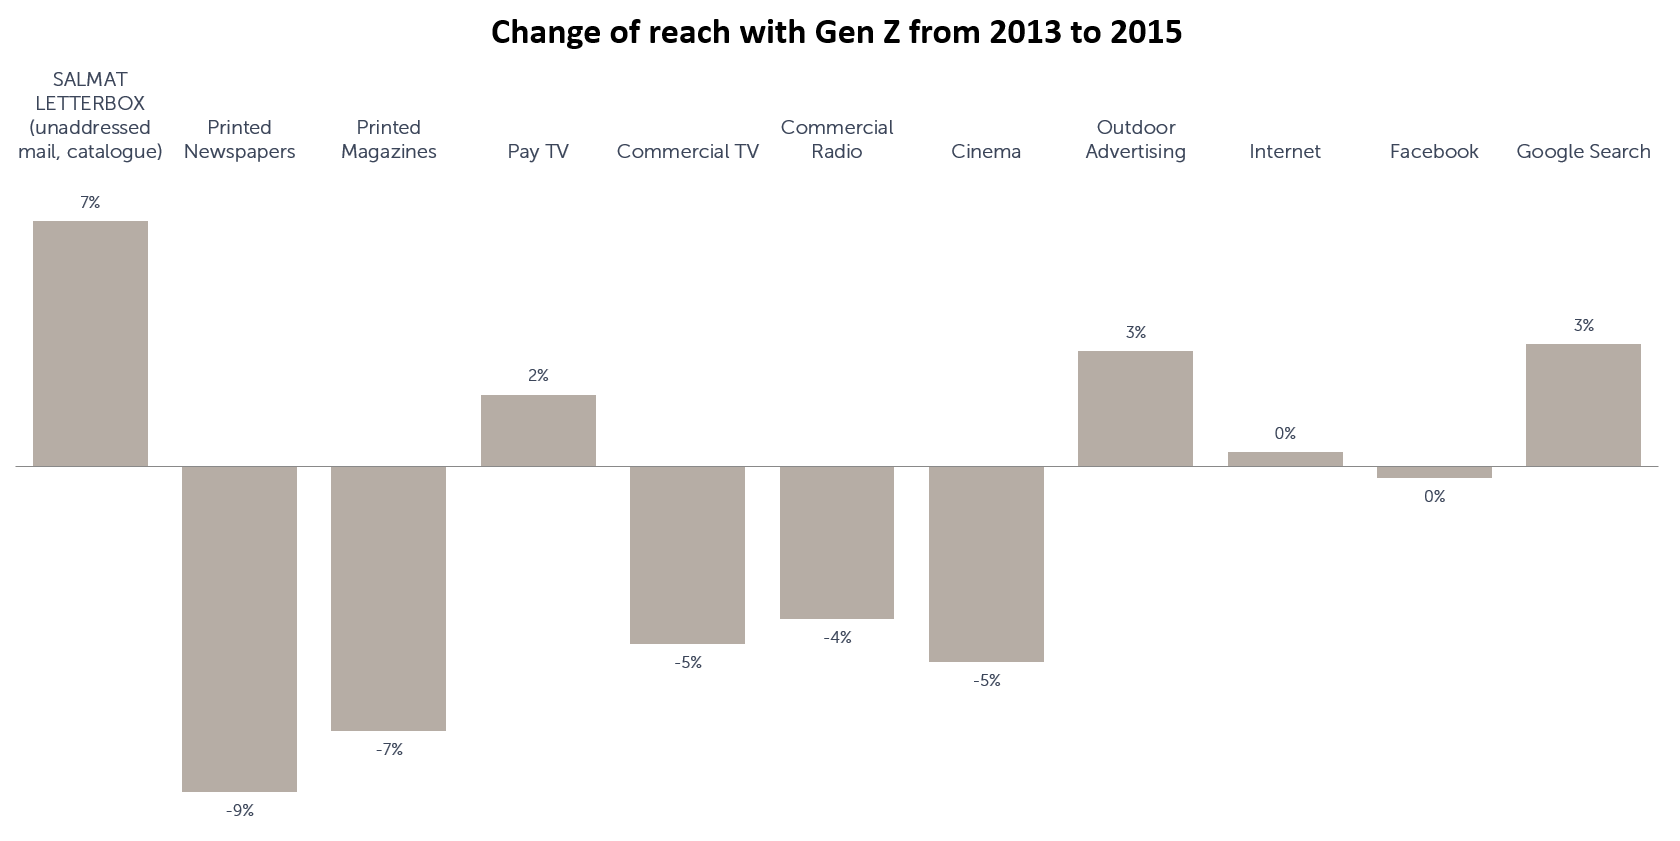 1 - Salmat - Change of reach with Gen Z 2013 to 2015